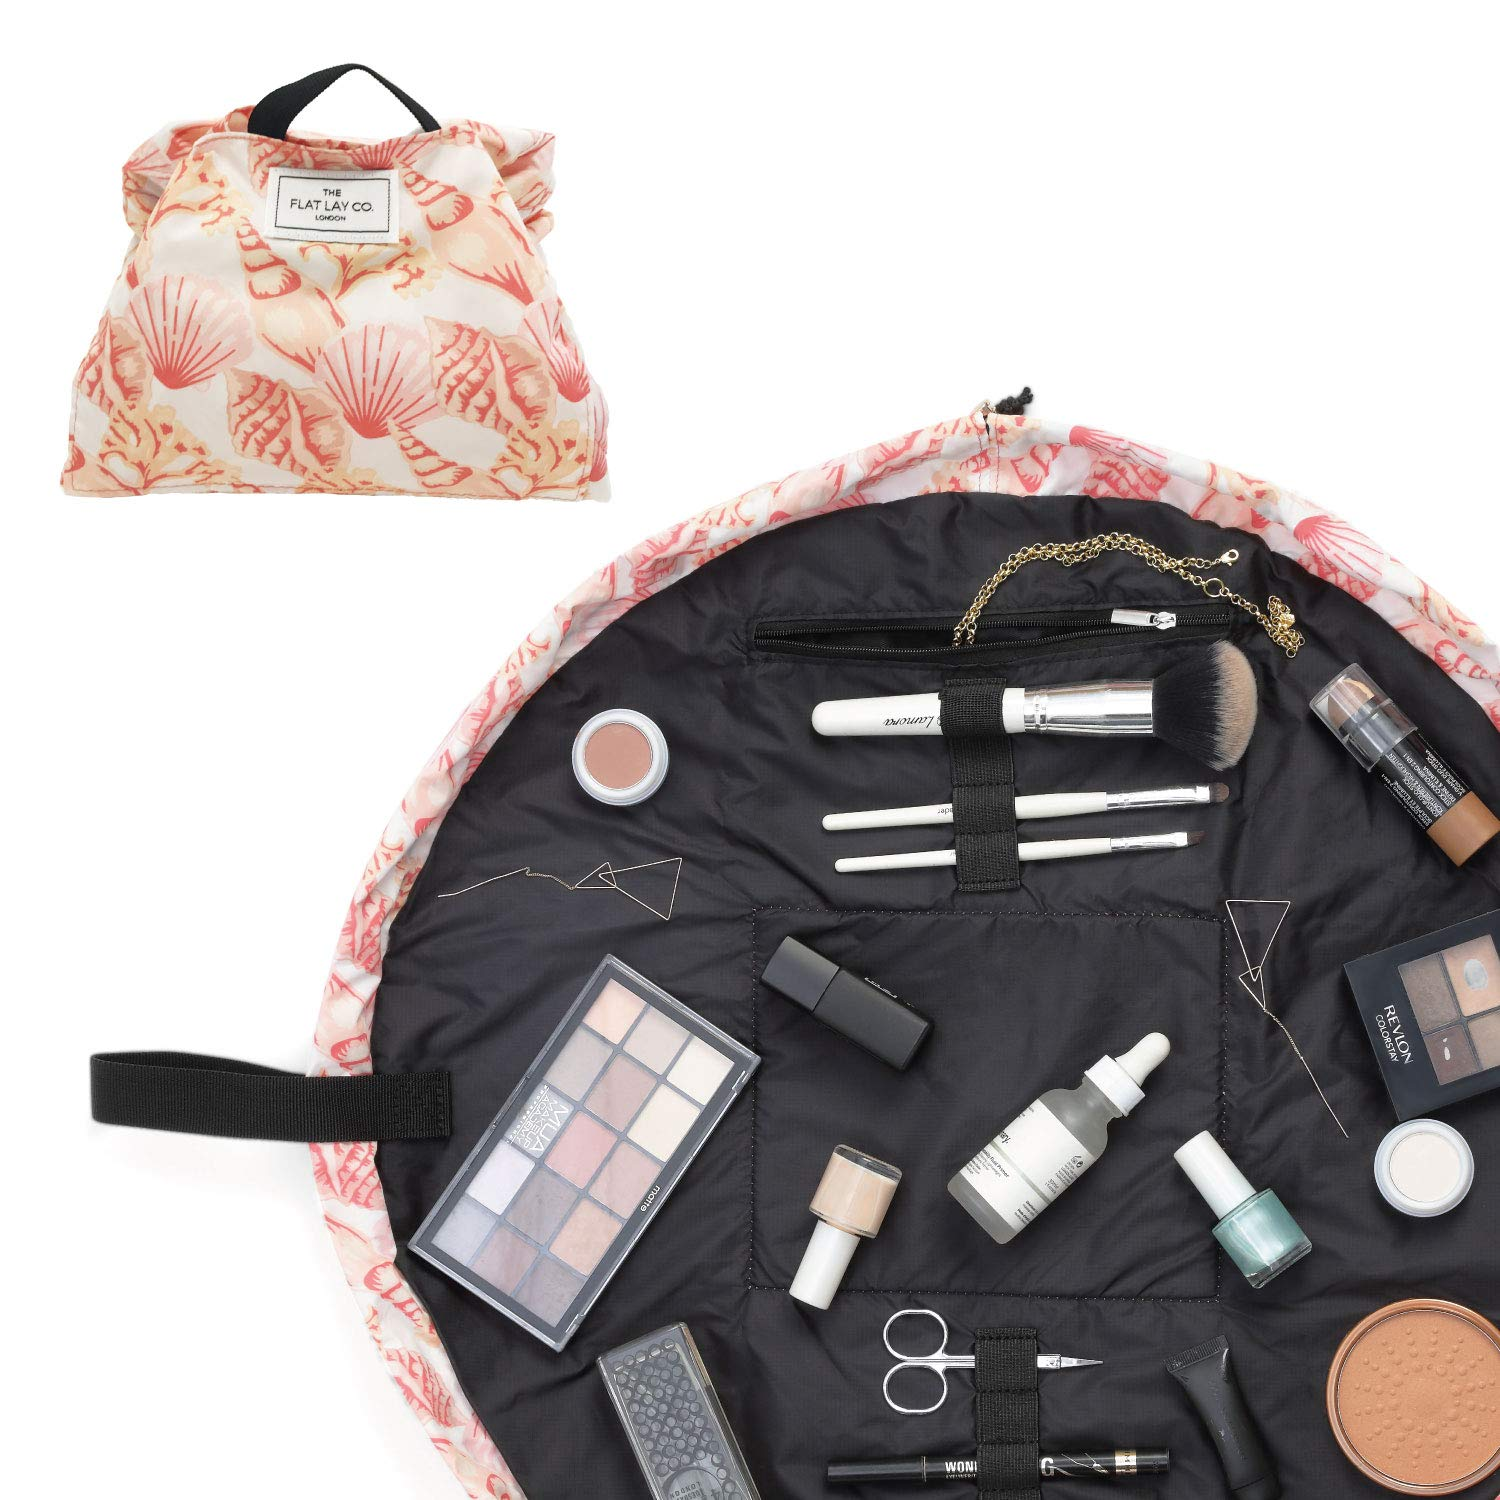 Make Up Bag   Lay Flat Travel Cosmetic Toiletry Case   Contents not  included (Everything   50cm, Pink Shells)  Amazon.co.uk  Beauty d4c1ee1dbc